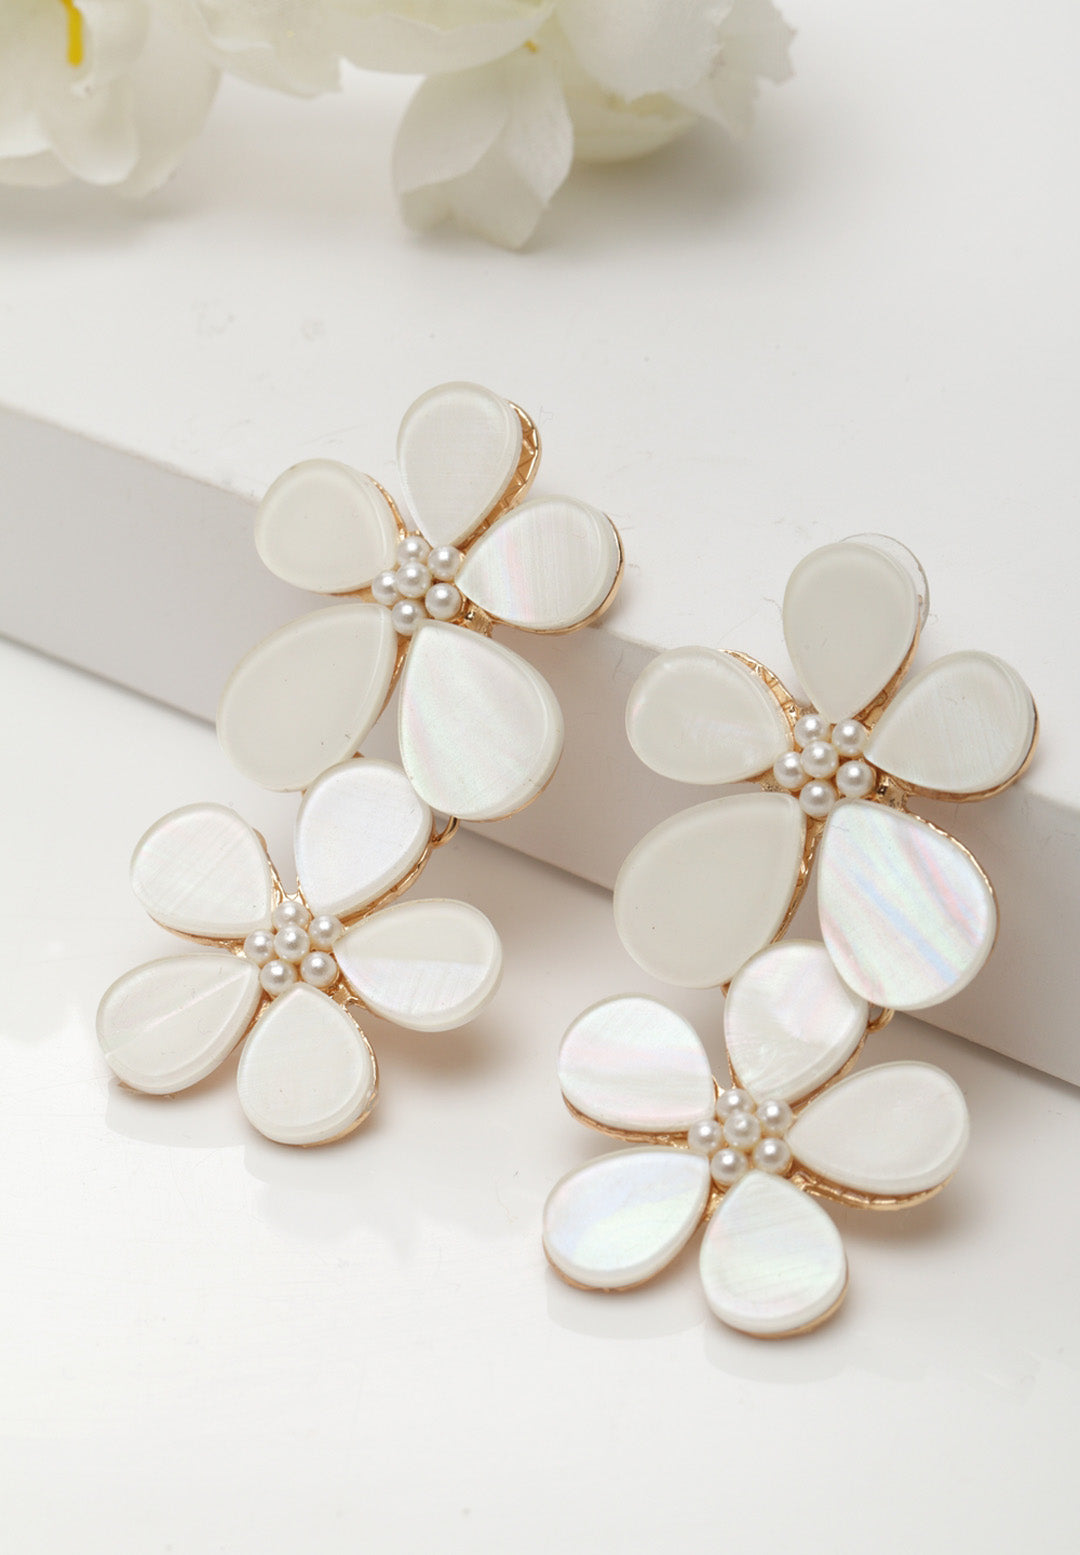 Avant-Garde Paris Statement Korean Bohemian Cute Acrylic Flower Stud Earrings